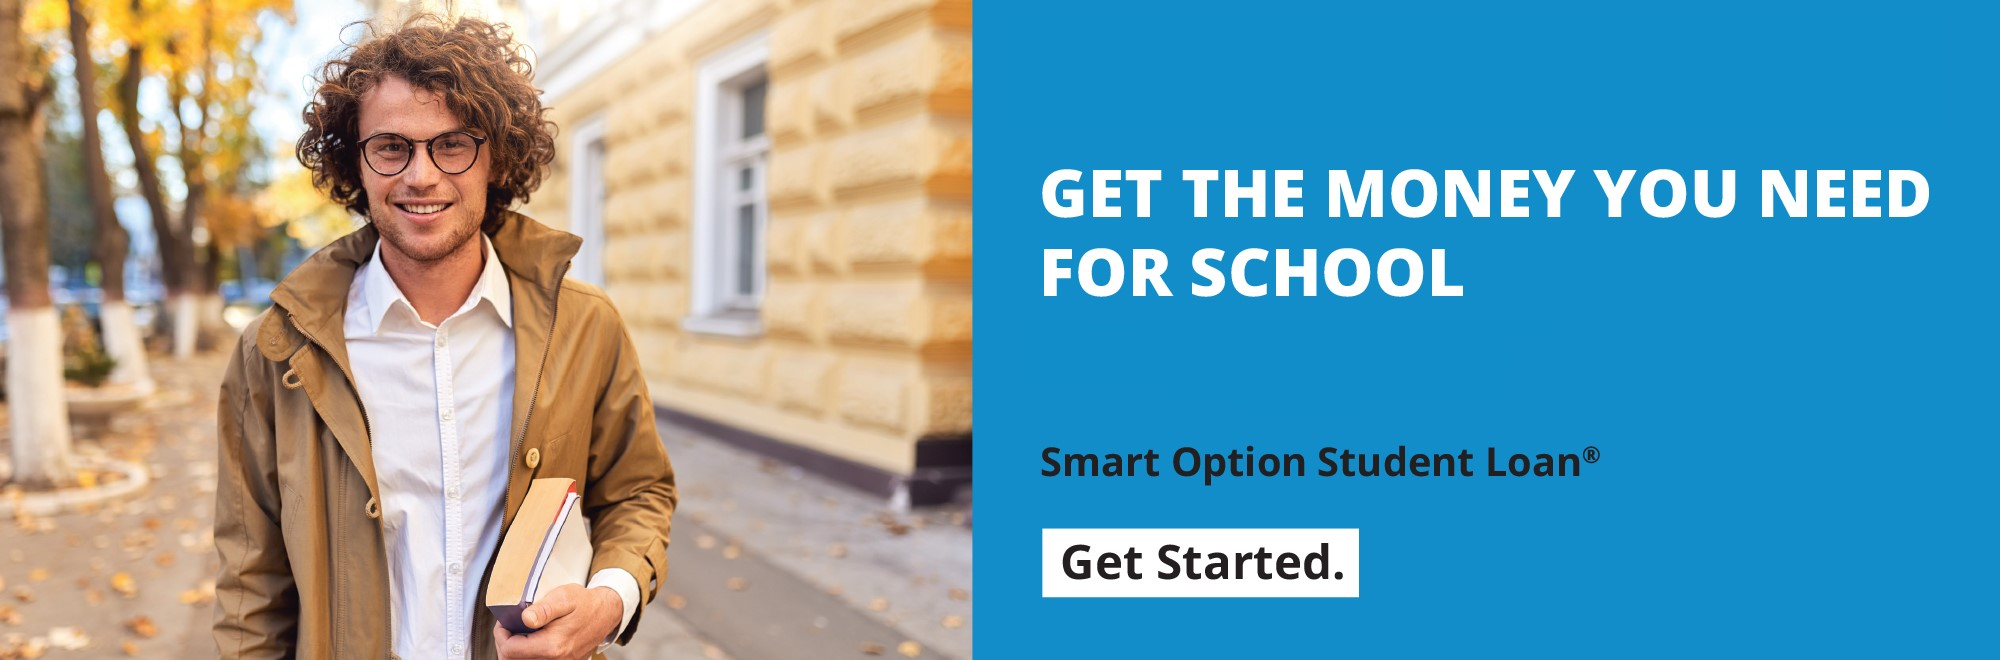 Get the money you need for college with a student loan from MEMBERS1st! Smart option student loan. Get started.